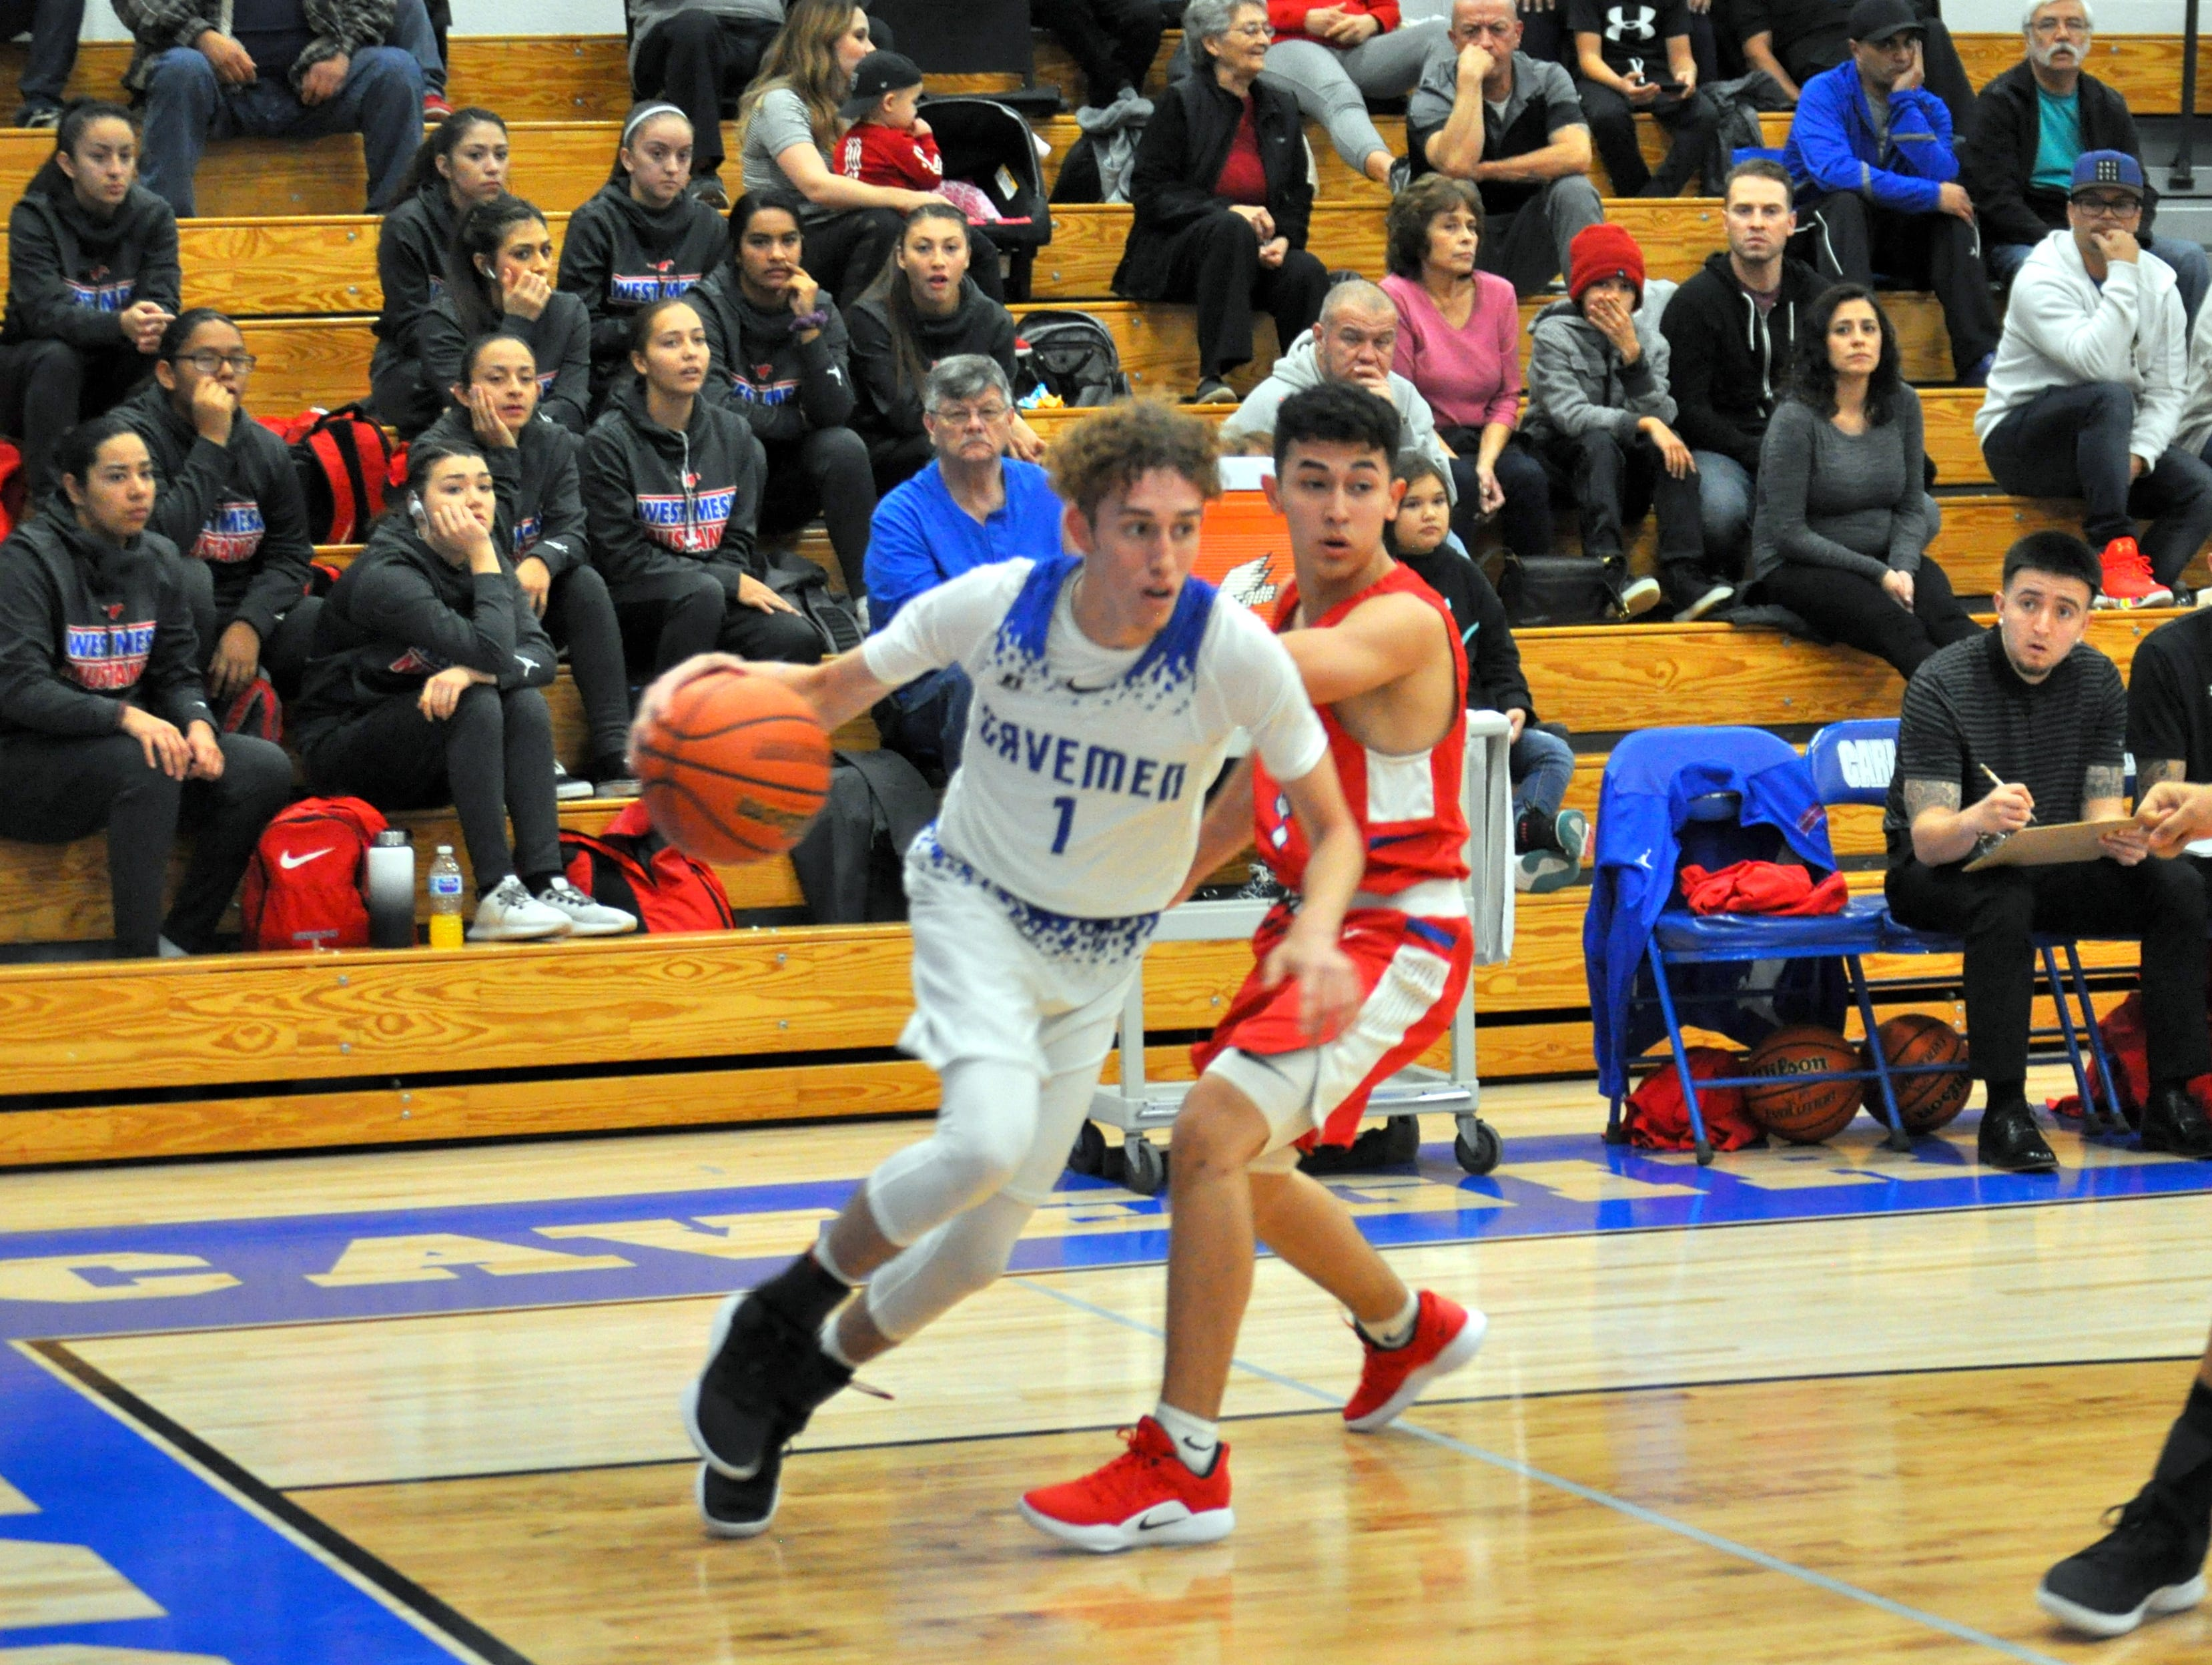 Josh Sillas drives to the lane during Friday's game against West Mesa.